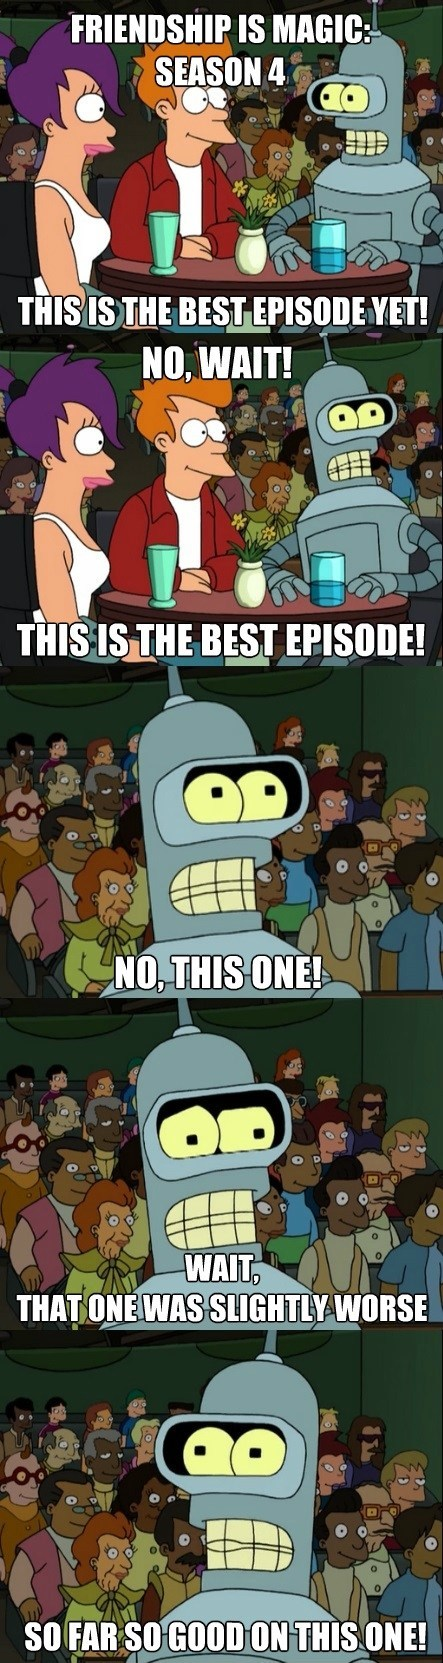 bender best episode yet mlp season 4 - 7999207936